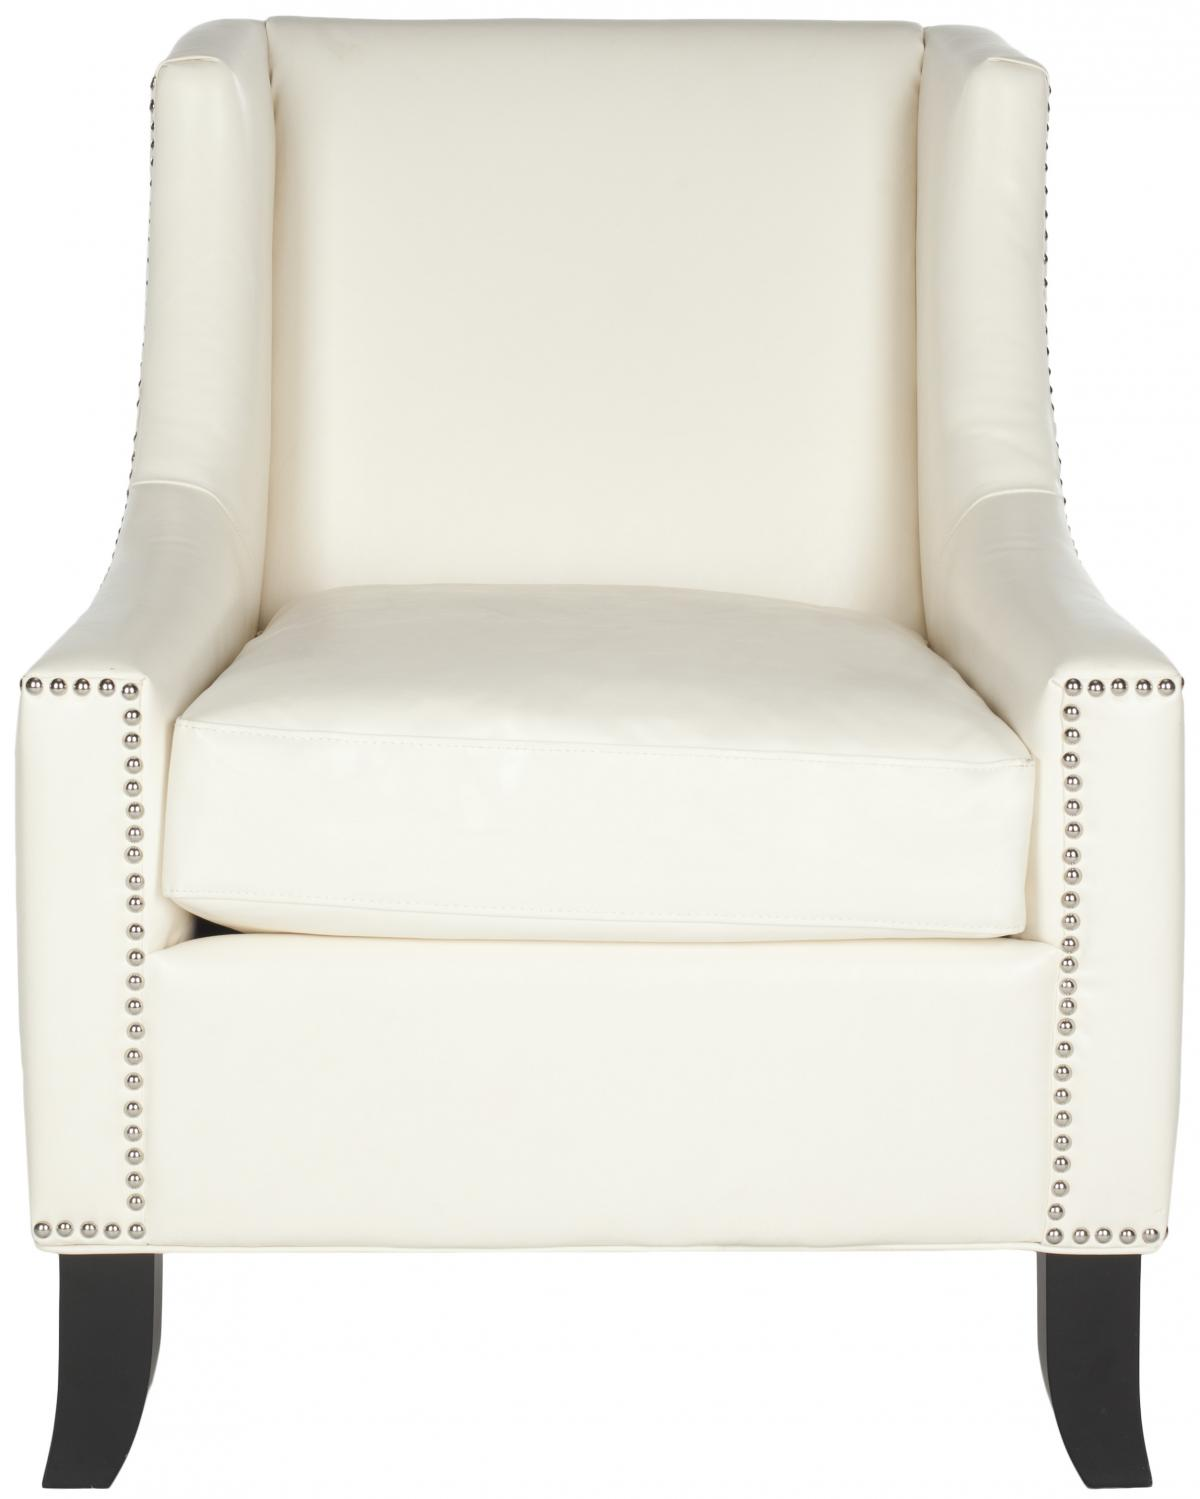 DANIEL CLUB CHAIR   SILVER NAIL HEADS MCR4733B ACCENT CHAIRS